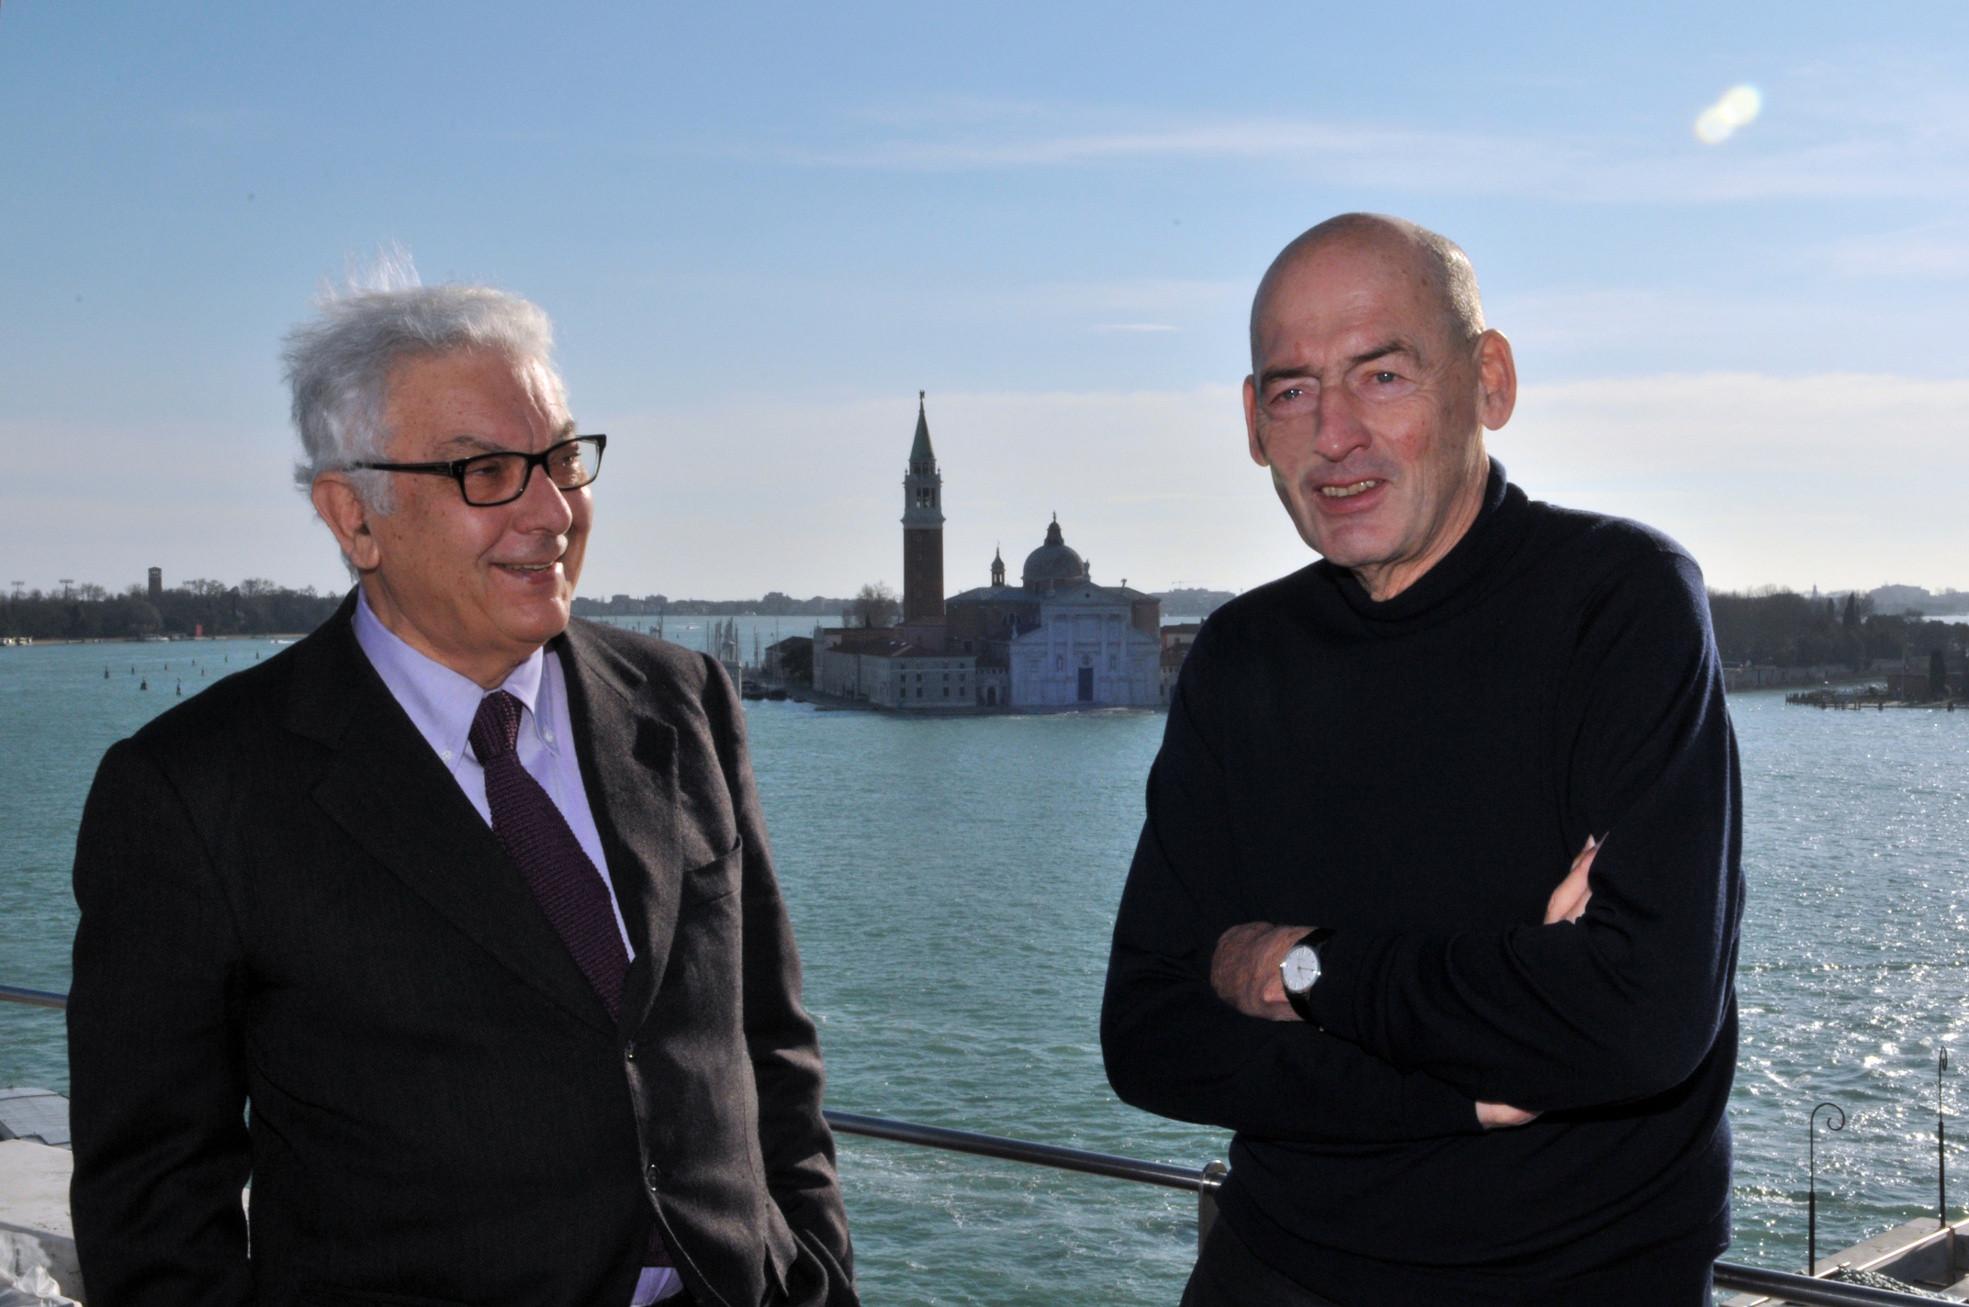 5 Ways Koolhaas' Biennale Will Be Different From the Rest, Paolo Baratta and Rem Koolhaas. © Giorgio Zucchiatti. Image Courtesy of la Biennale di Venezia